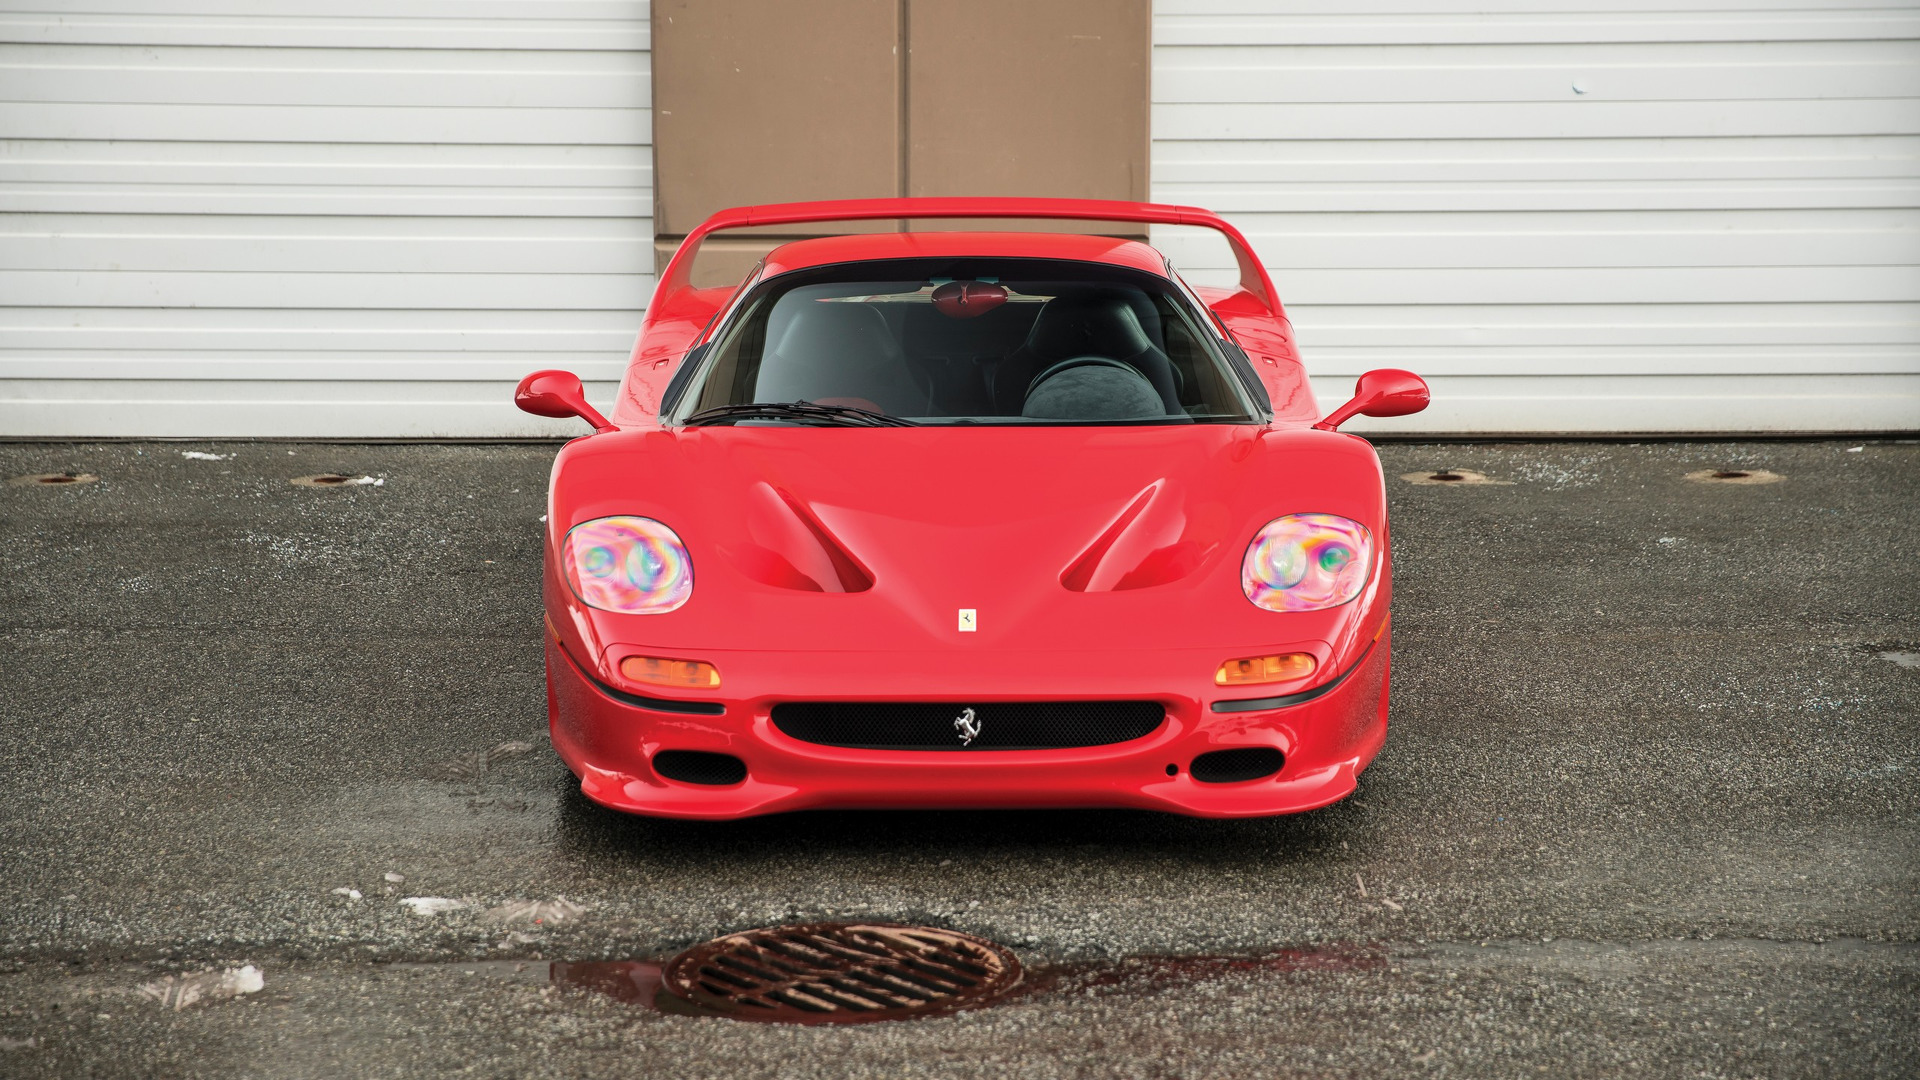 1995 Ferrari F50 Owned By Mike Tyson Alles Auto